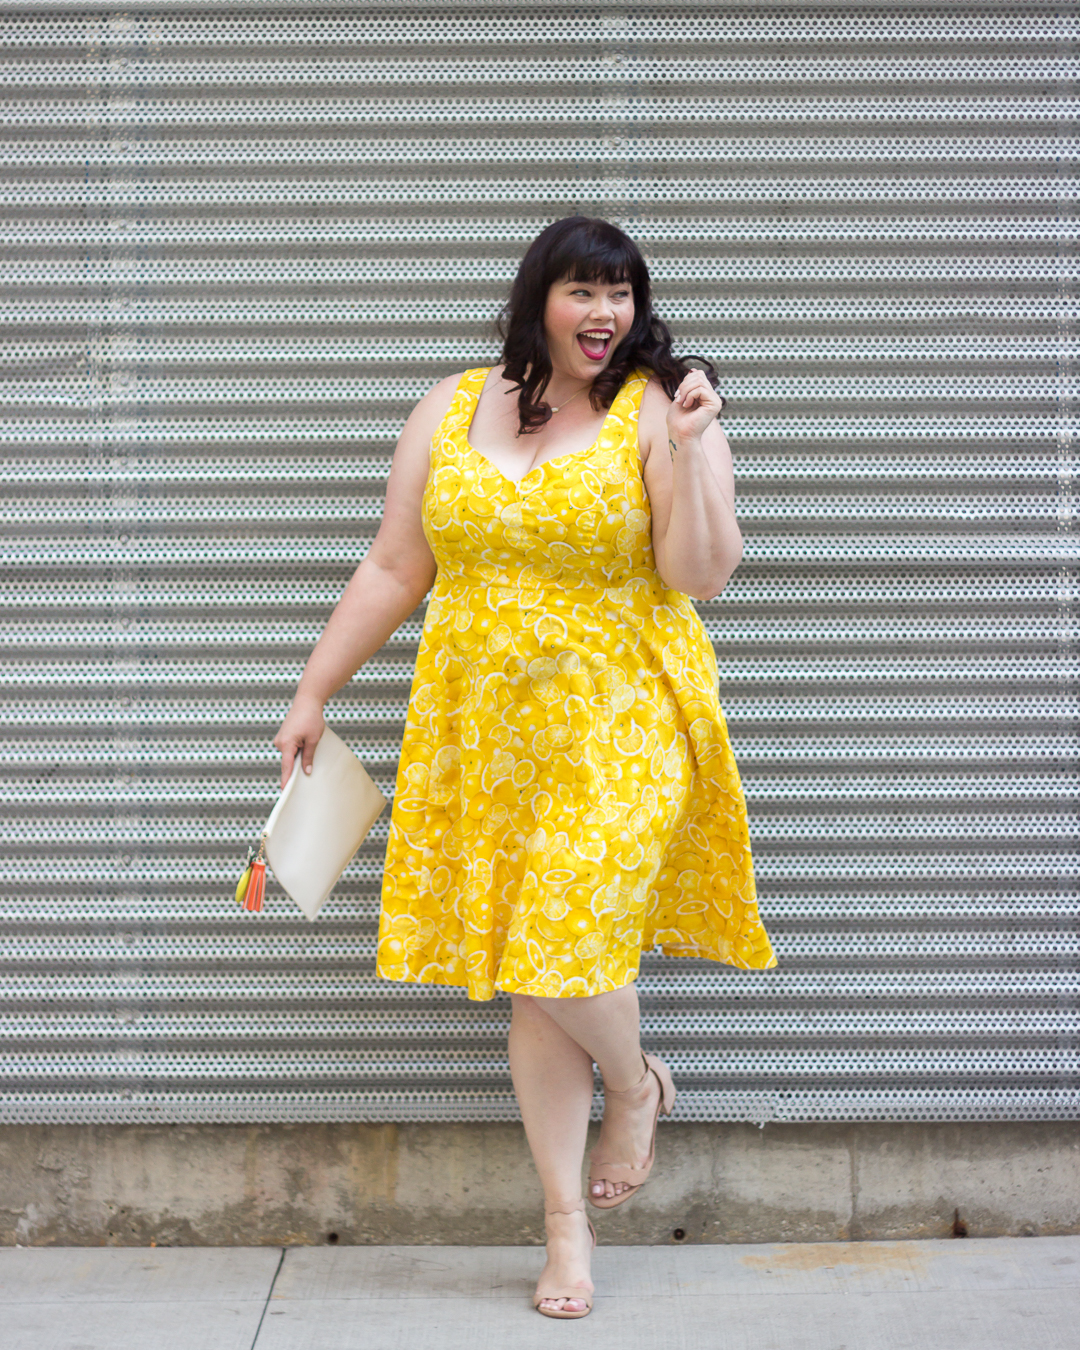 Chicago Style, Gwynnie Bee, Chicago Blogger, Plus Size Blogger, Plus Size Clothing, Lemon Dress, Retro Style, Cherry Velvet